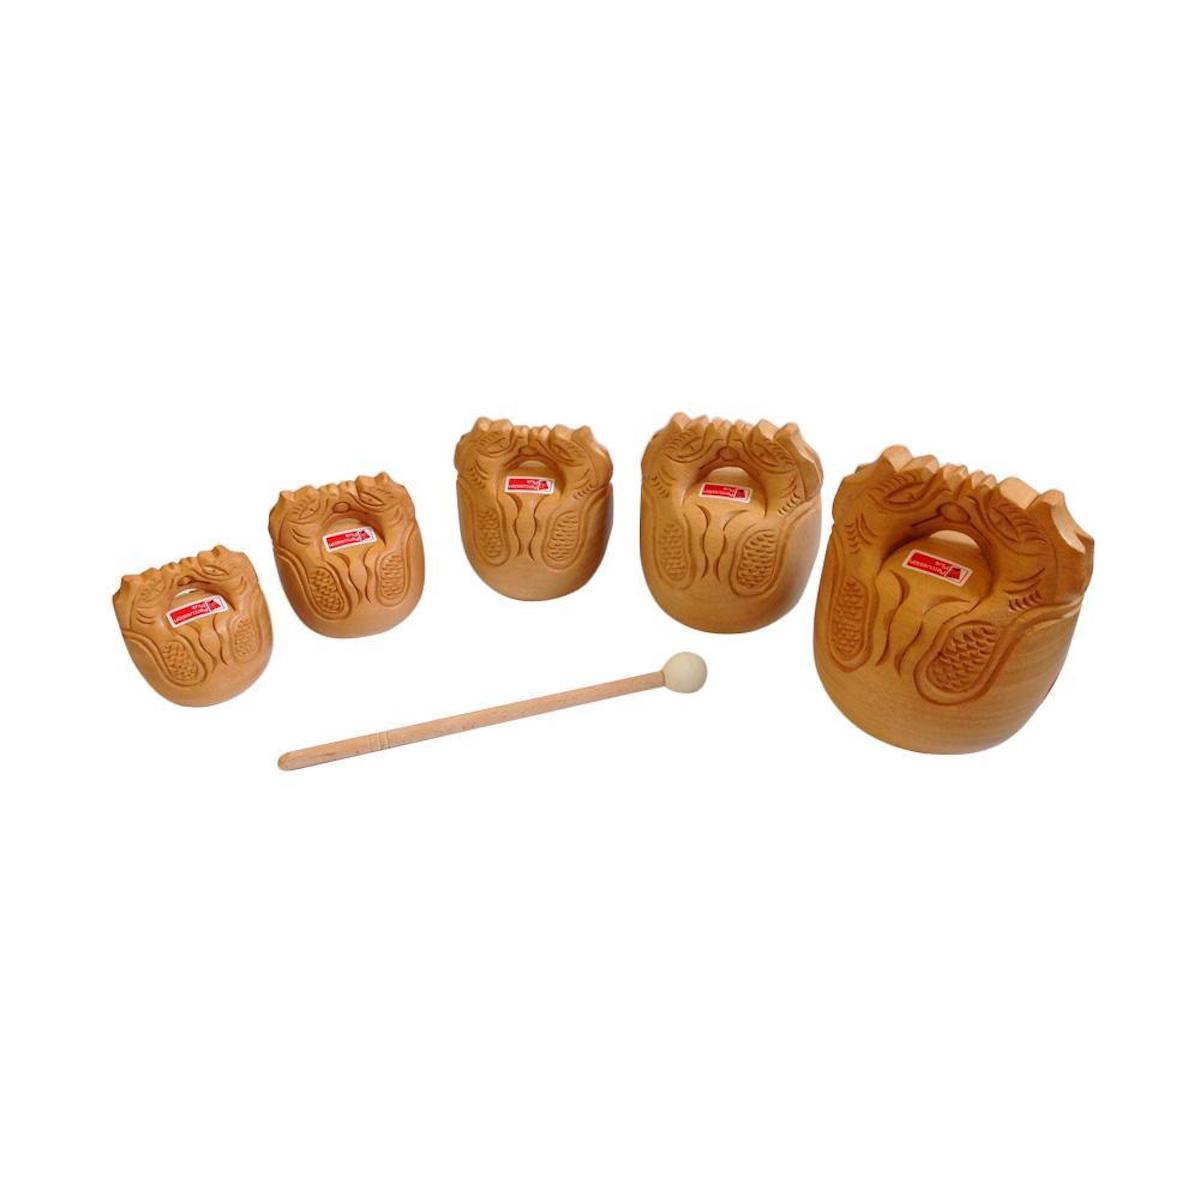 Percussion Plus Temple Blocks - Set of 5